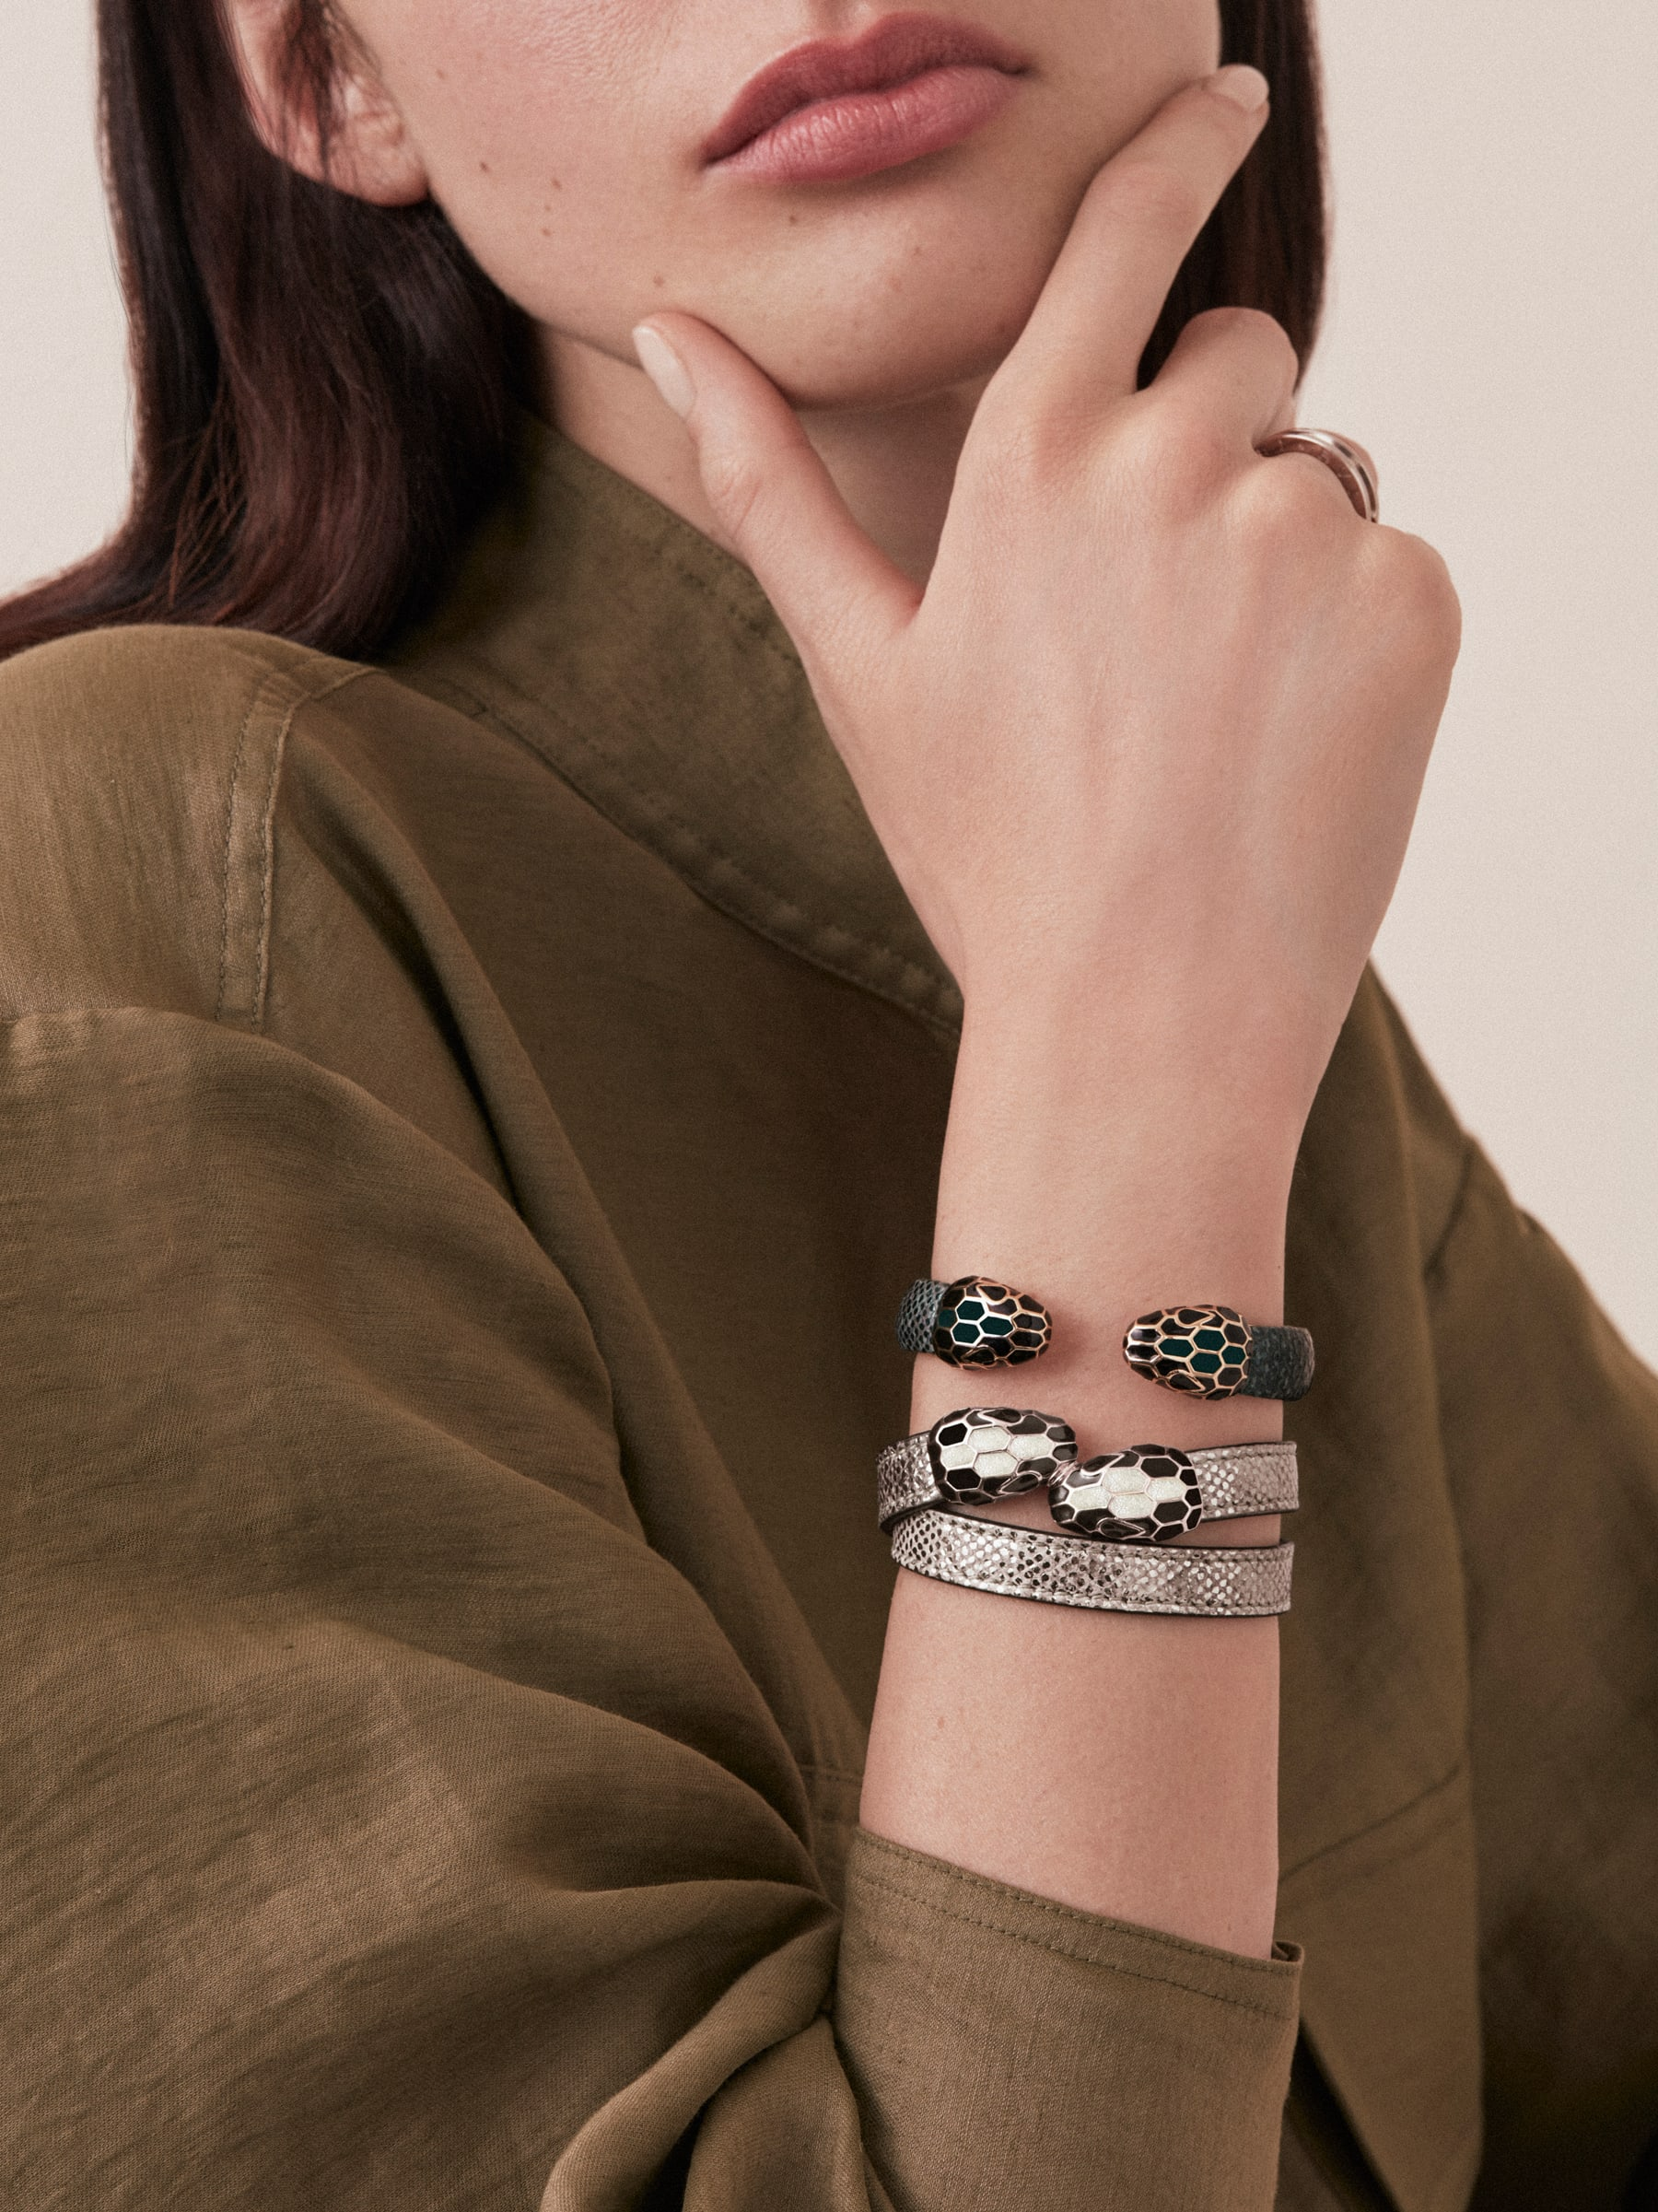 Serpenti Forever multi-coiled bracelet in milky opal metallic karung skin, with brass light gold plated hardware. Iconic contraire snakehead décor in black and glitter milky opal enamel, with black enamel eyes. MCSerp-MK-MO image 2